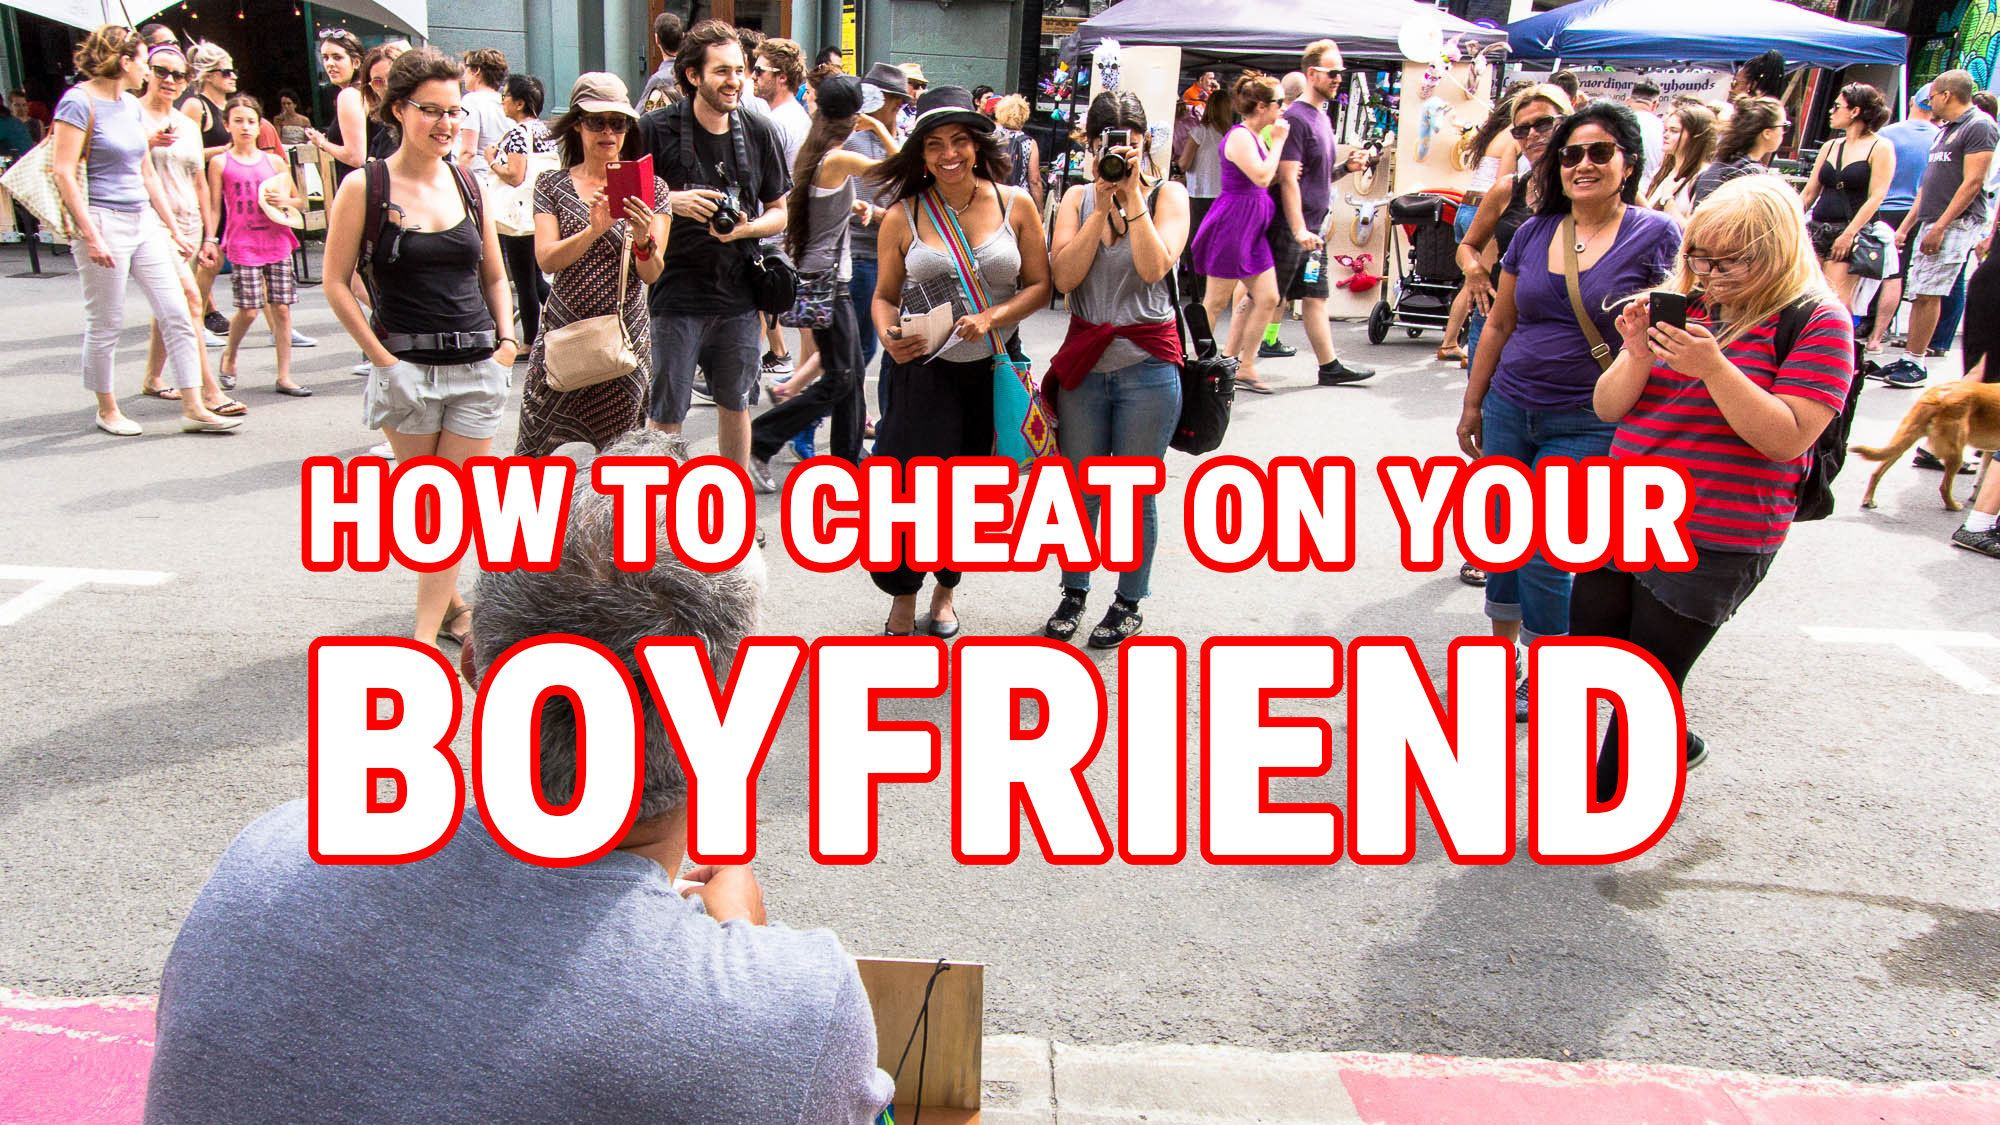 How to Cheat